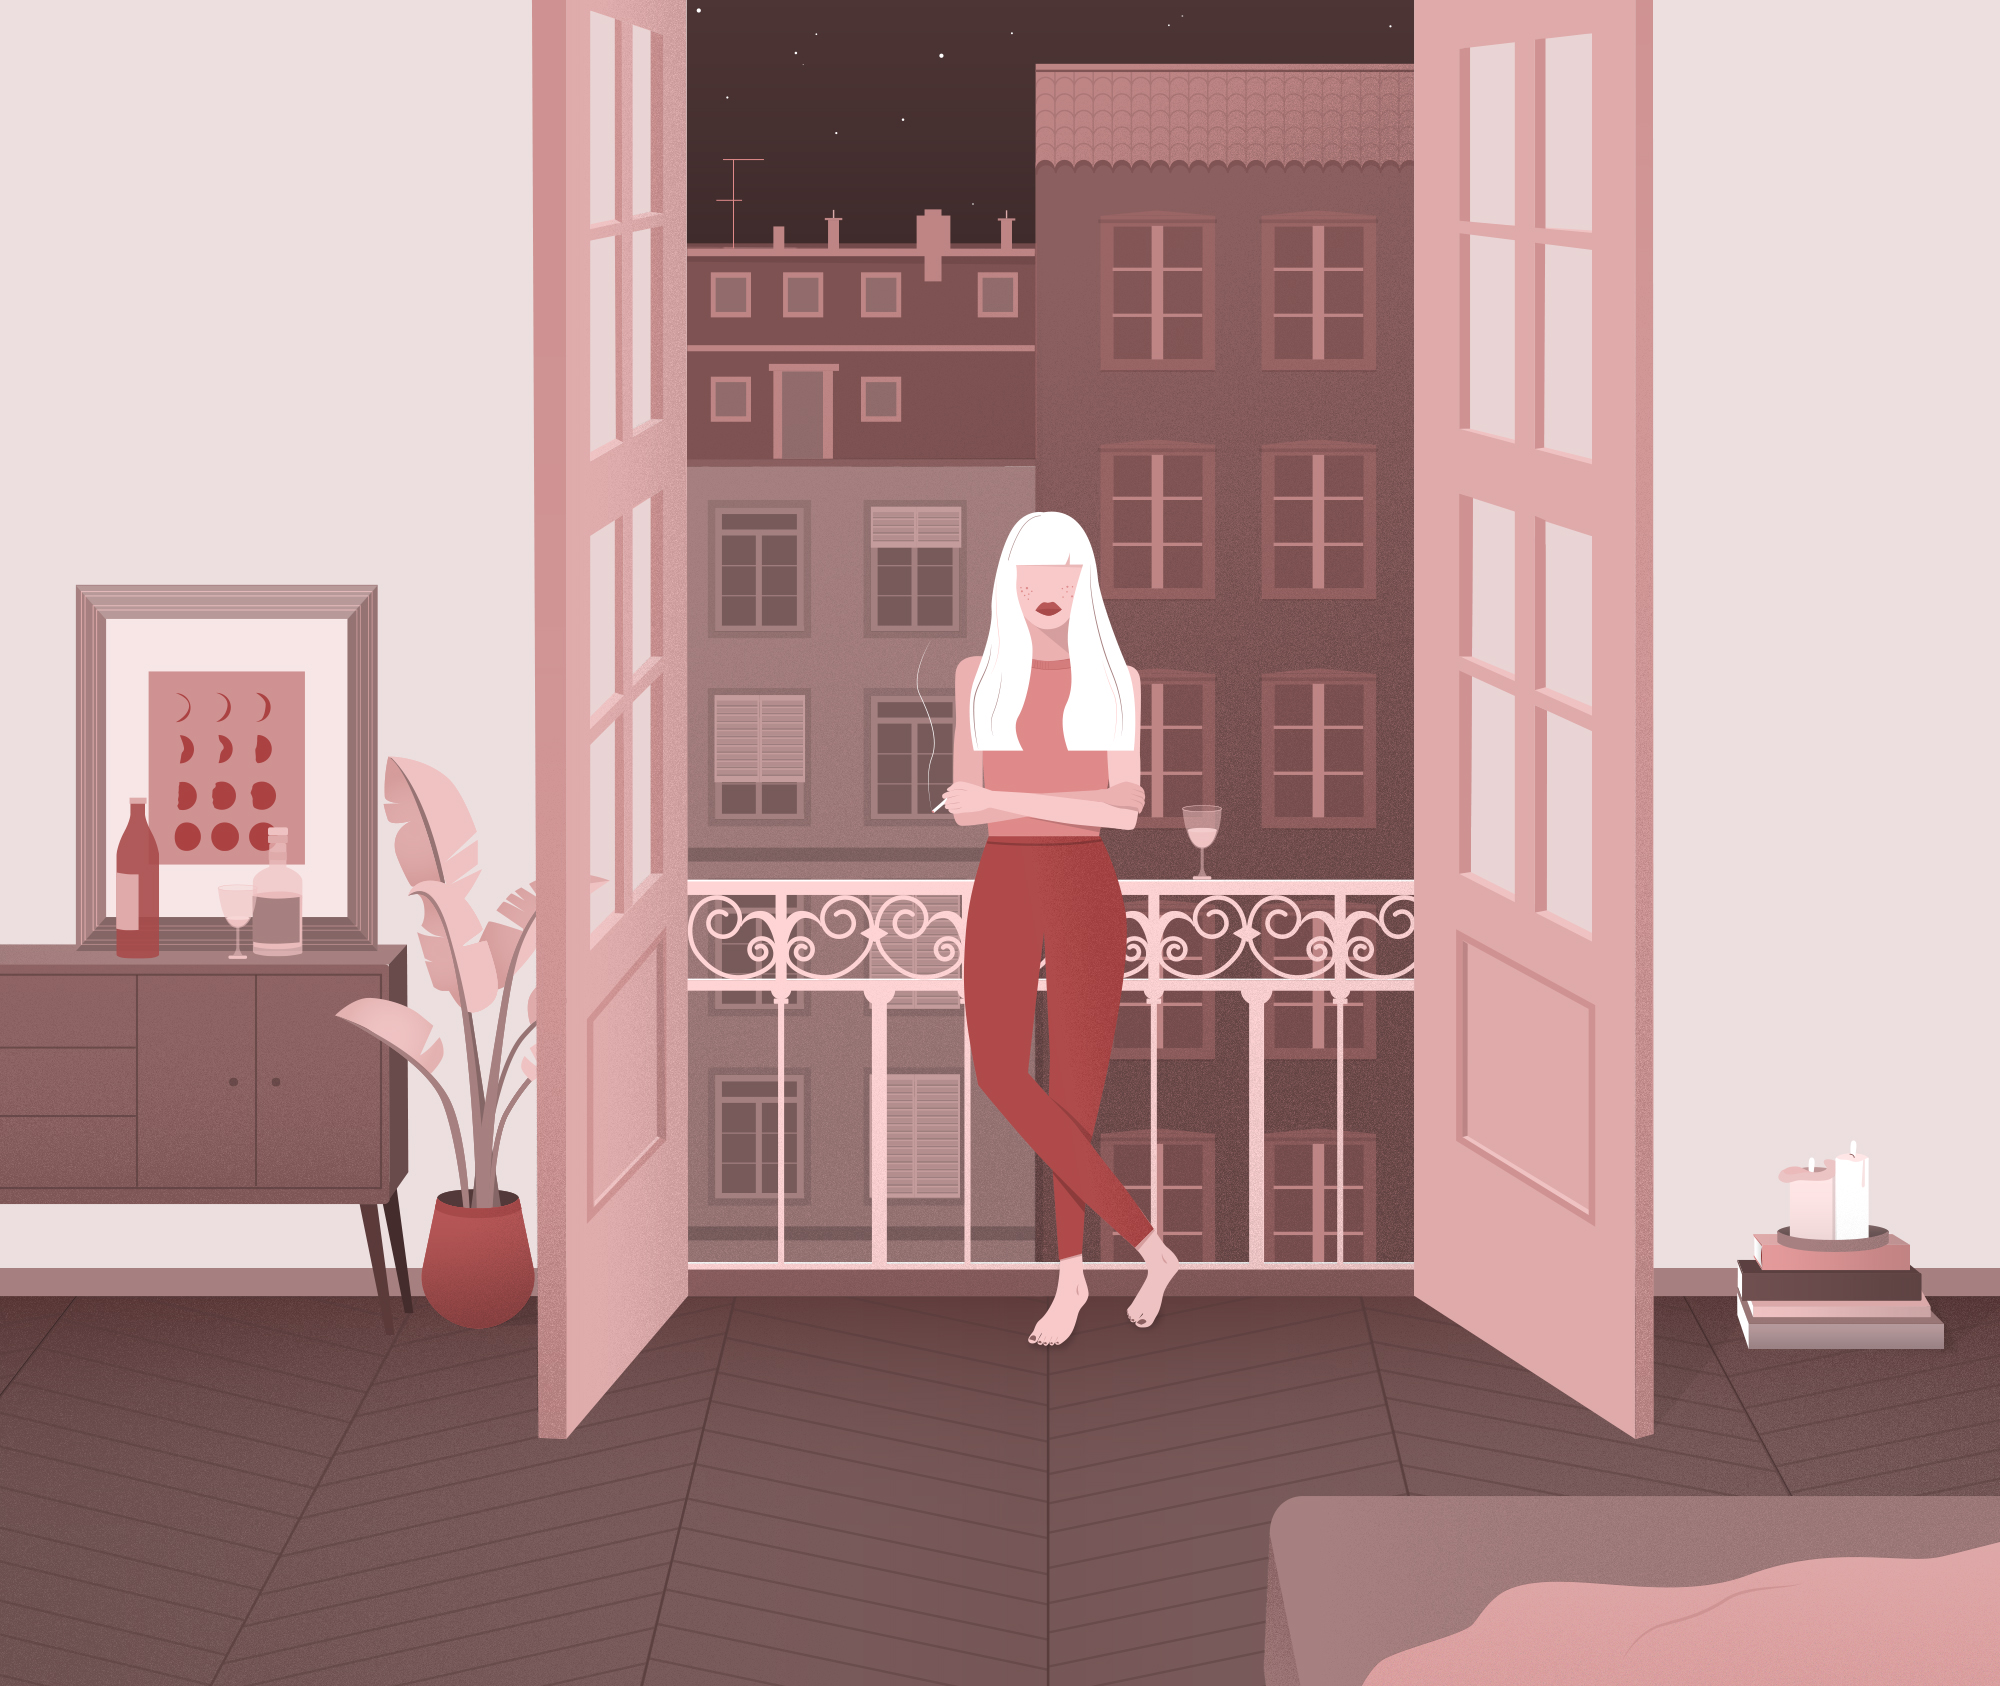 Beautiful Illustrations with a Vintage Vibe By Kati Kohl